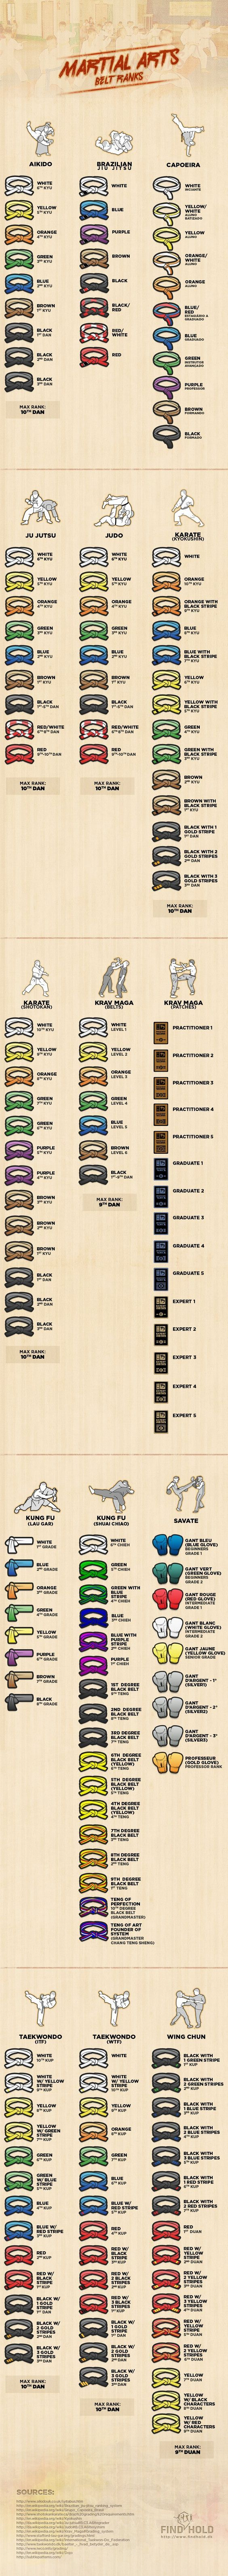 15 Martial Arts Belt Ranksgraphic  Mma Verse Hm Not Sure About Some  Of